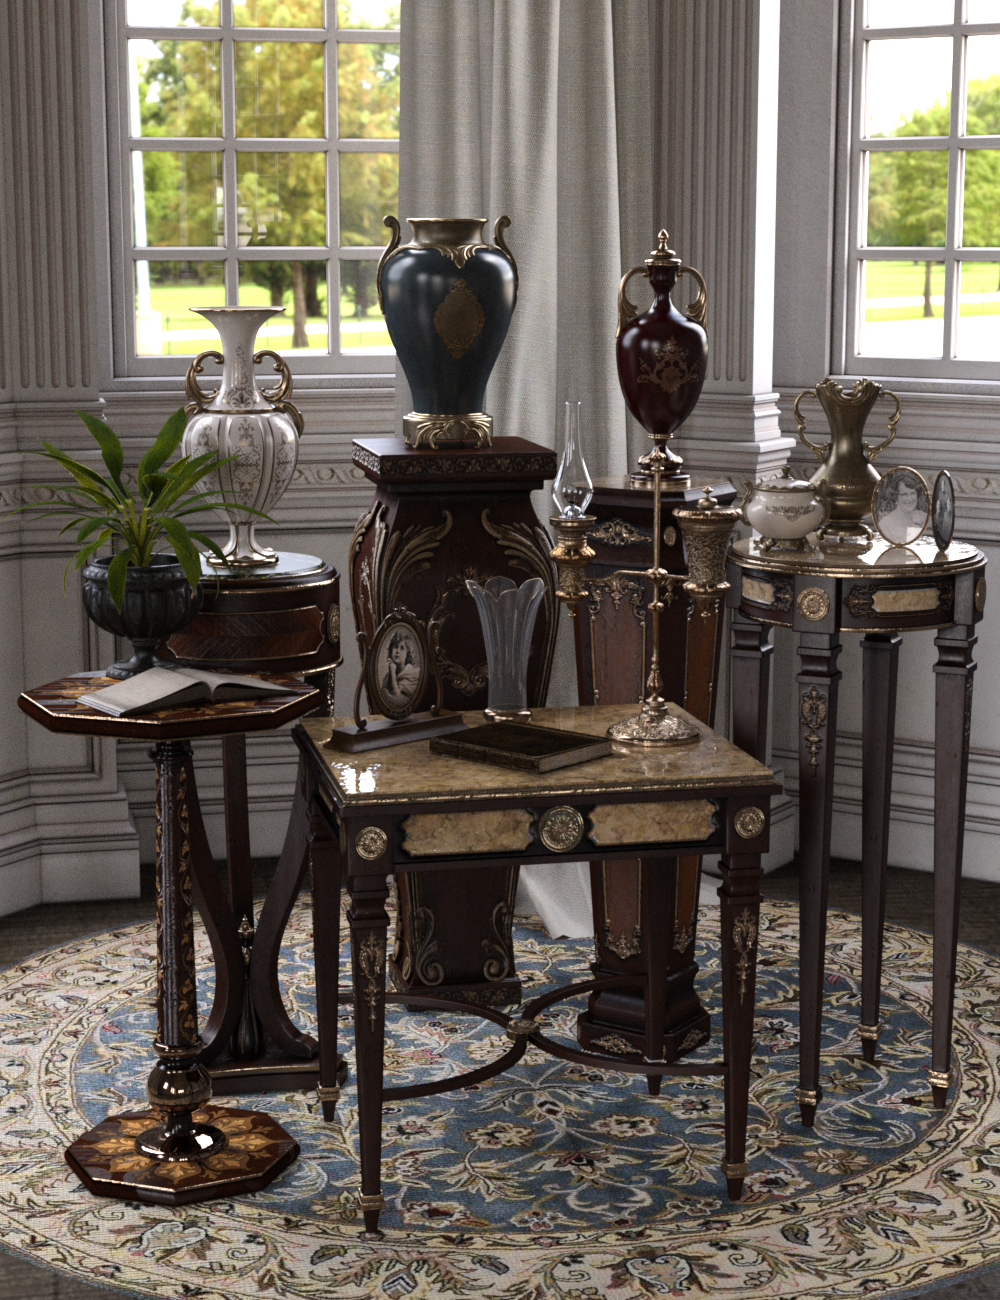 Vintage Stands and Tables by: LaurieS, 3D Models by Daz 3D